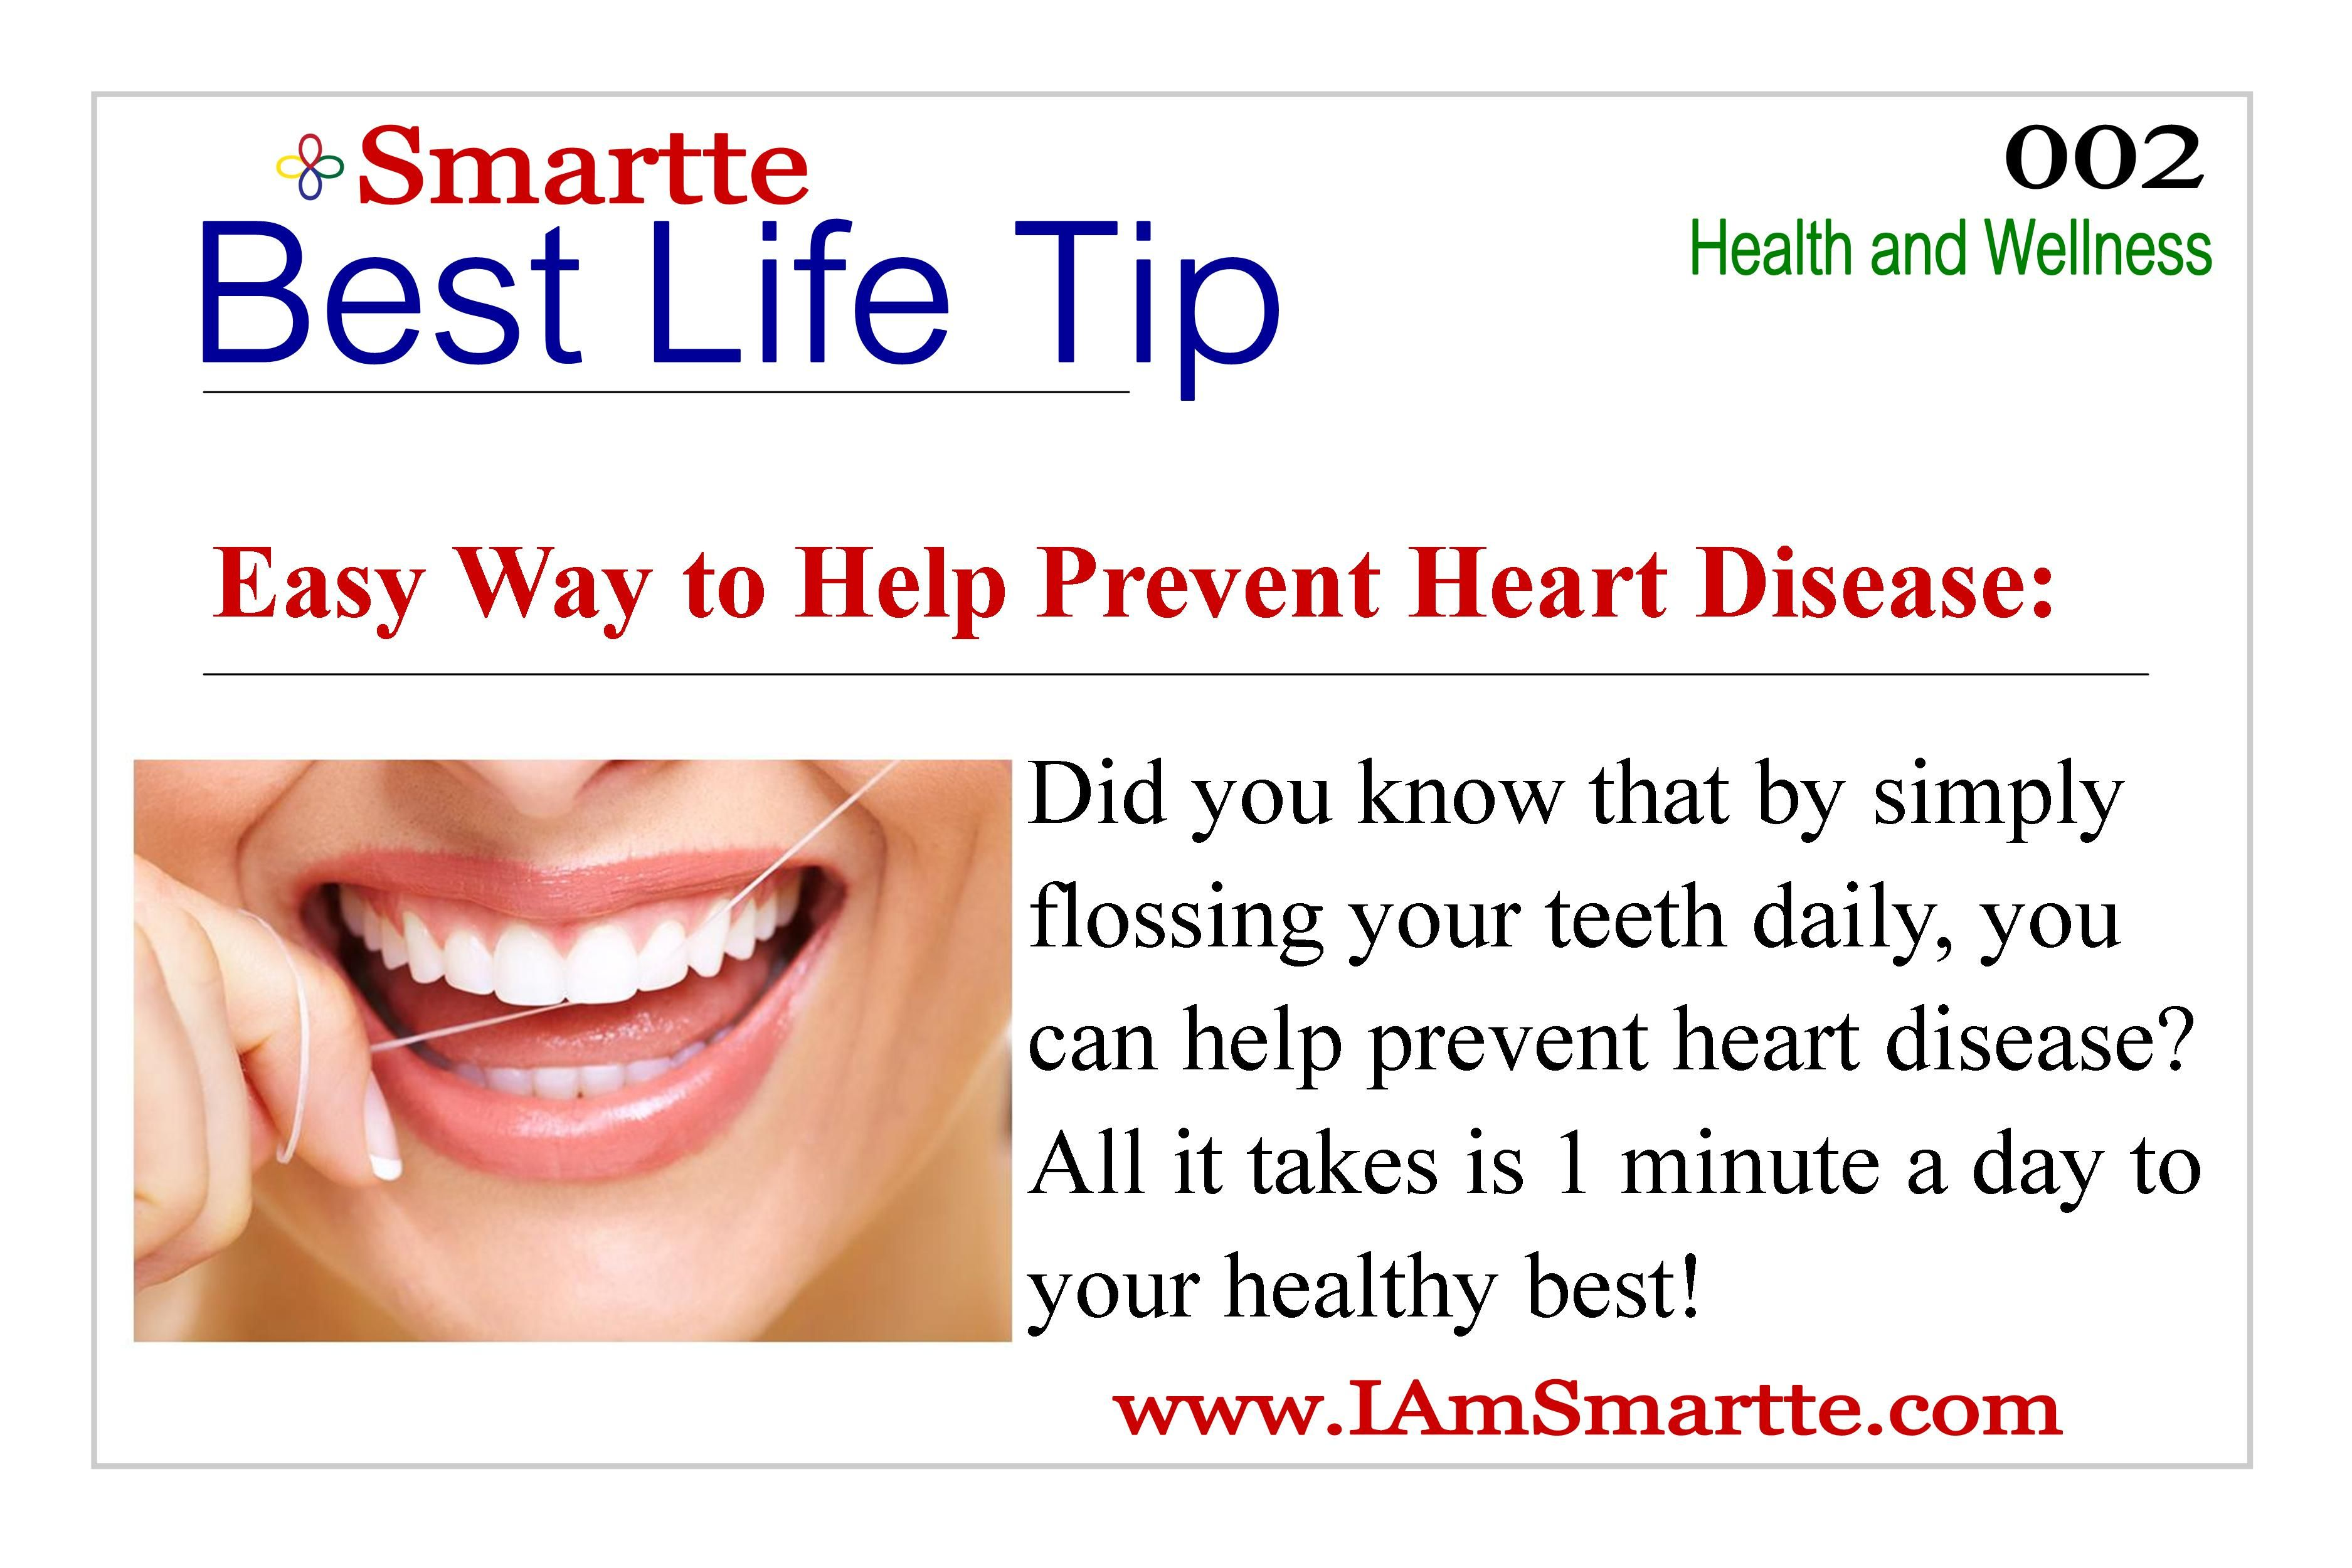 1-Minute Daily Tips for Healthy Teeth 1-Minute Daily Tips for Healthy Teeth new foto